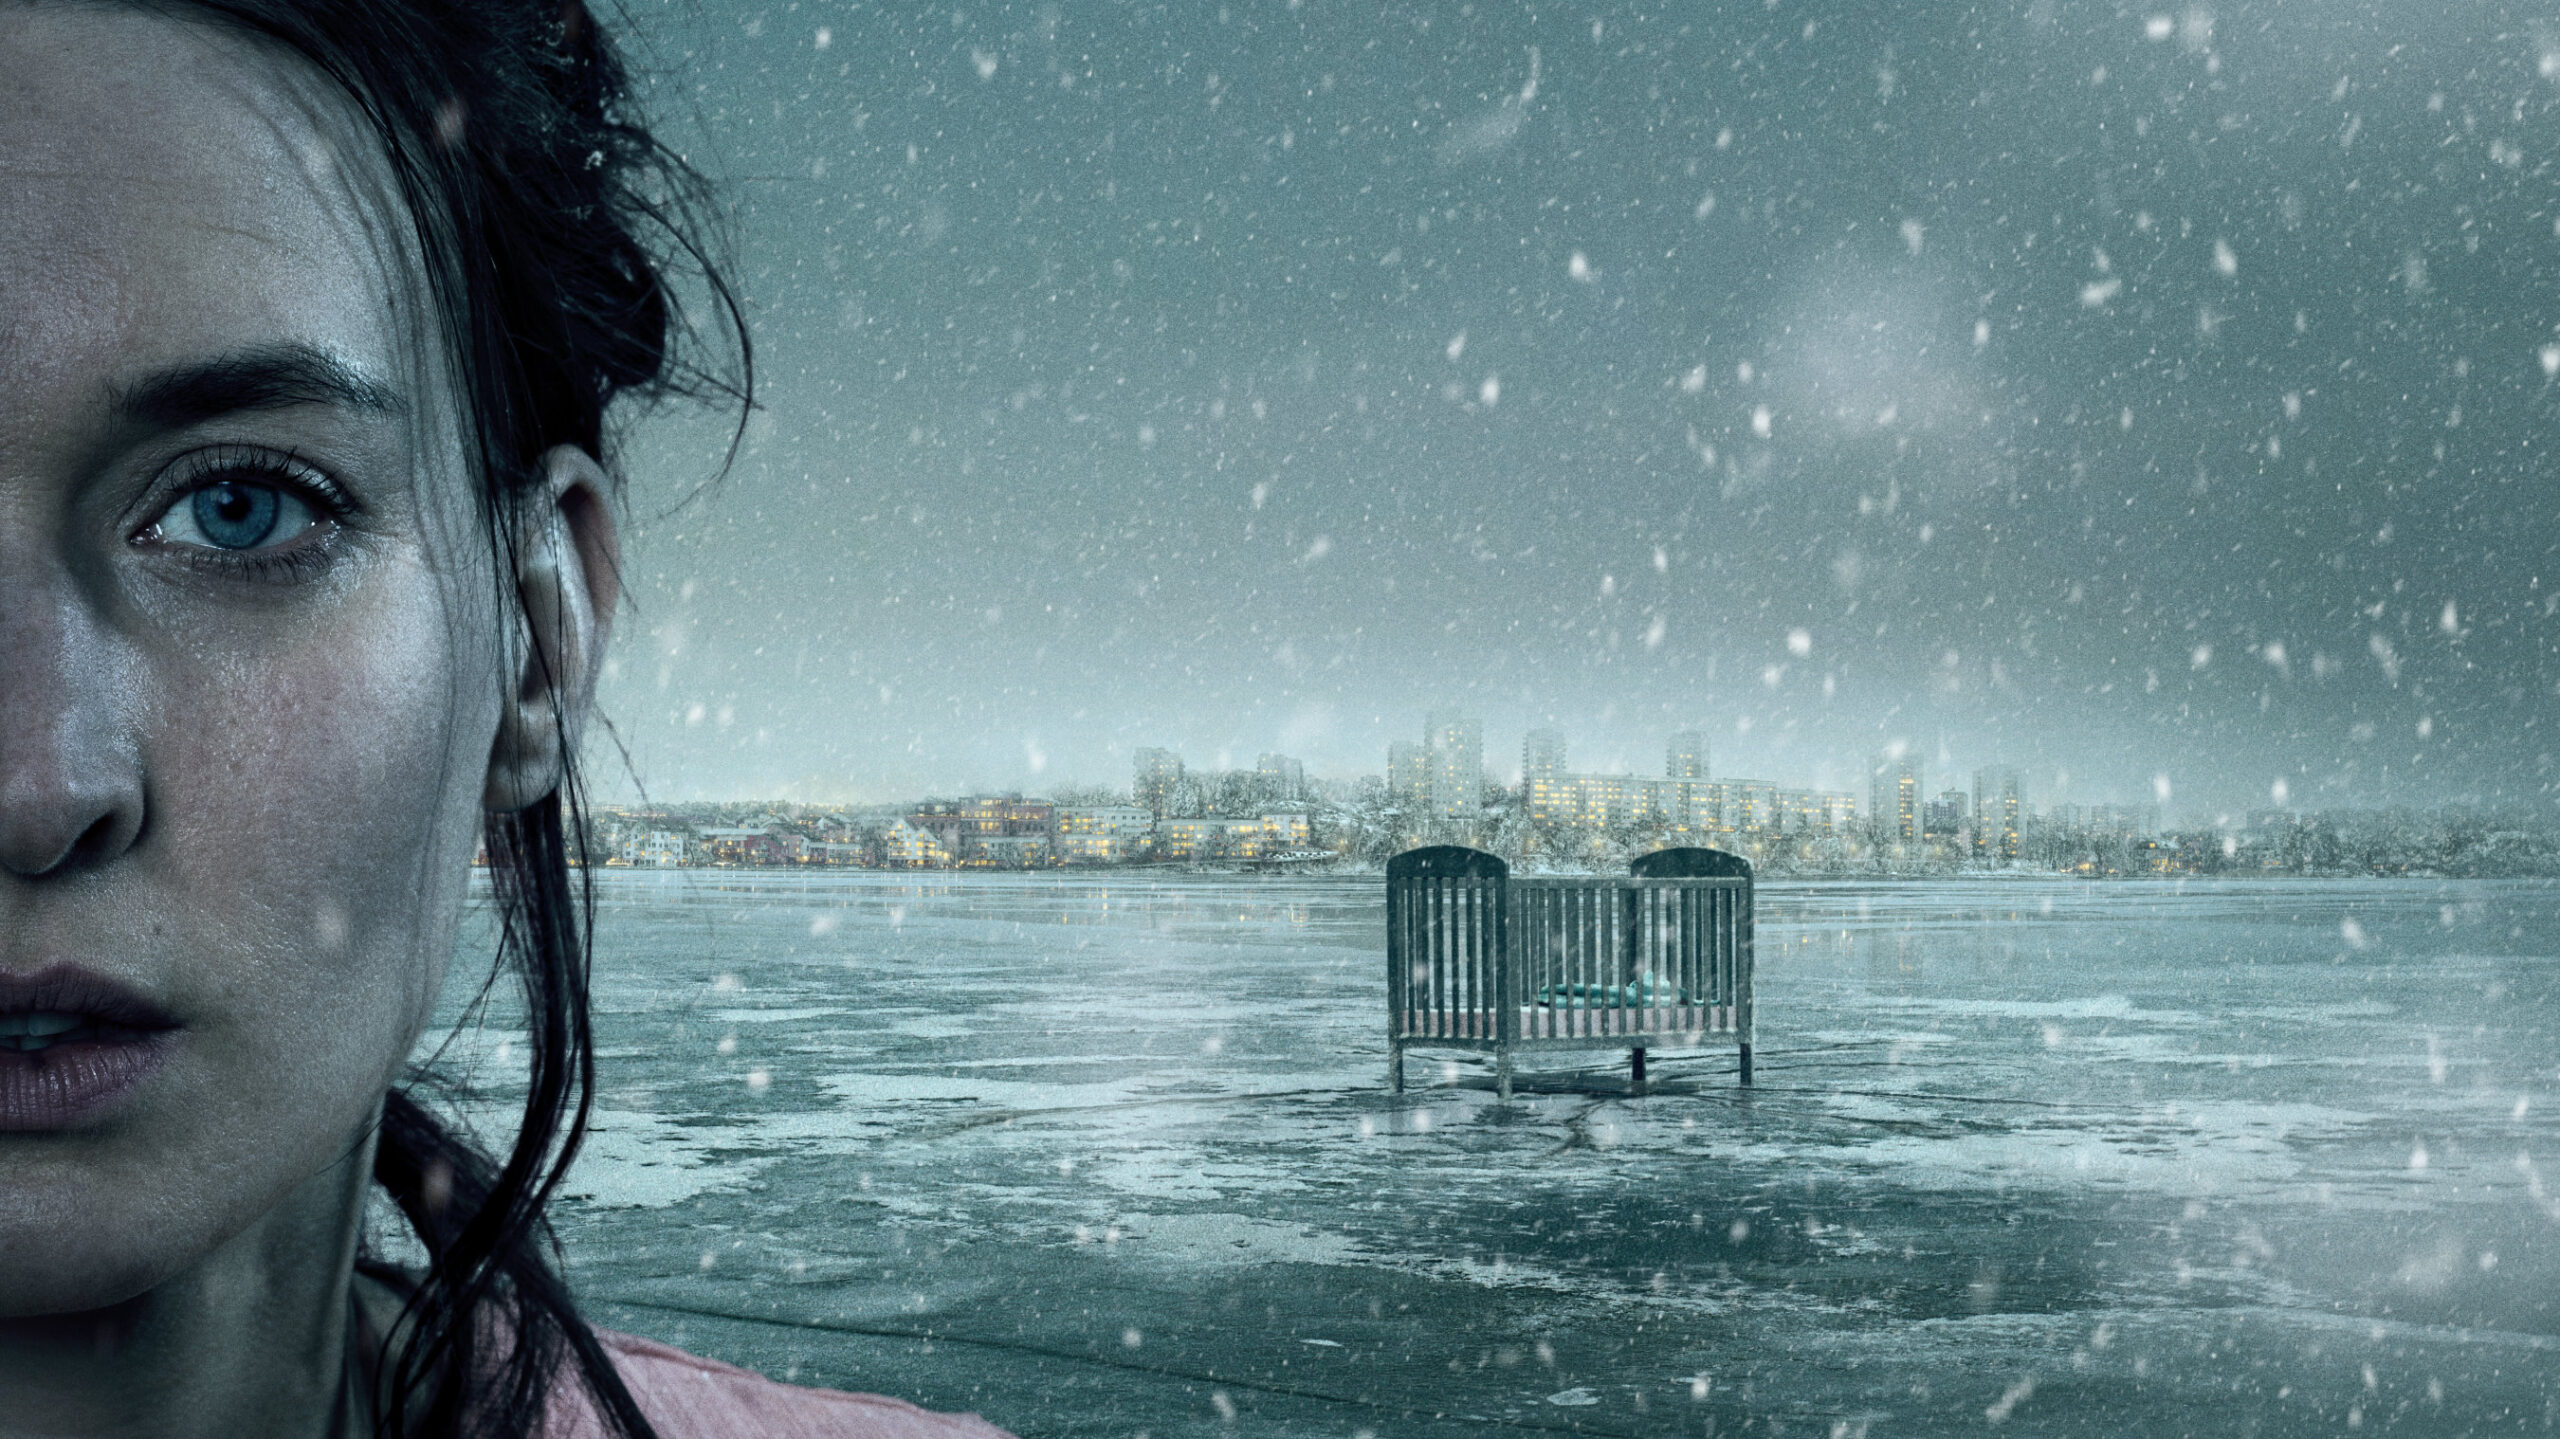 REINVENT BOARDS NEW NORDIC CRIME DRAMA SNOW ANGELS. WINNER OF DRAMA SERIES PITCH AT C21, 2018